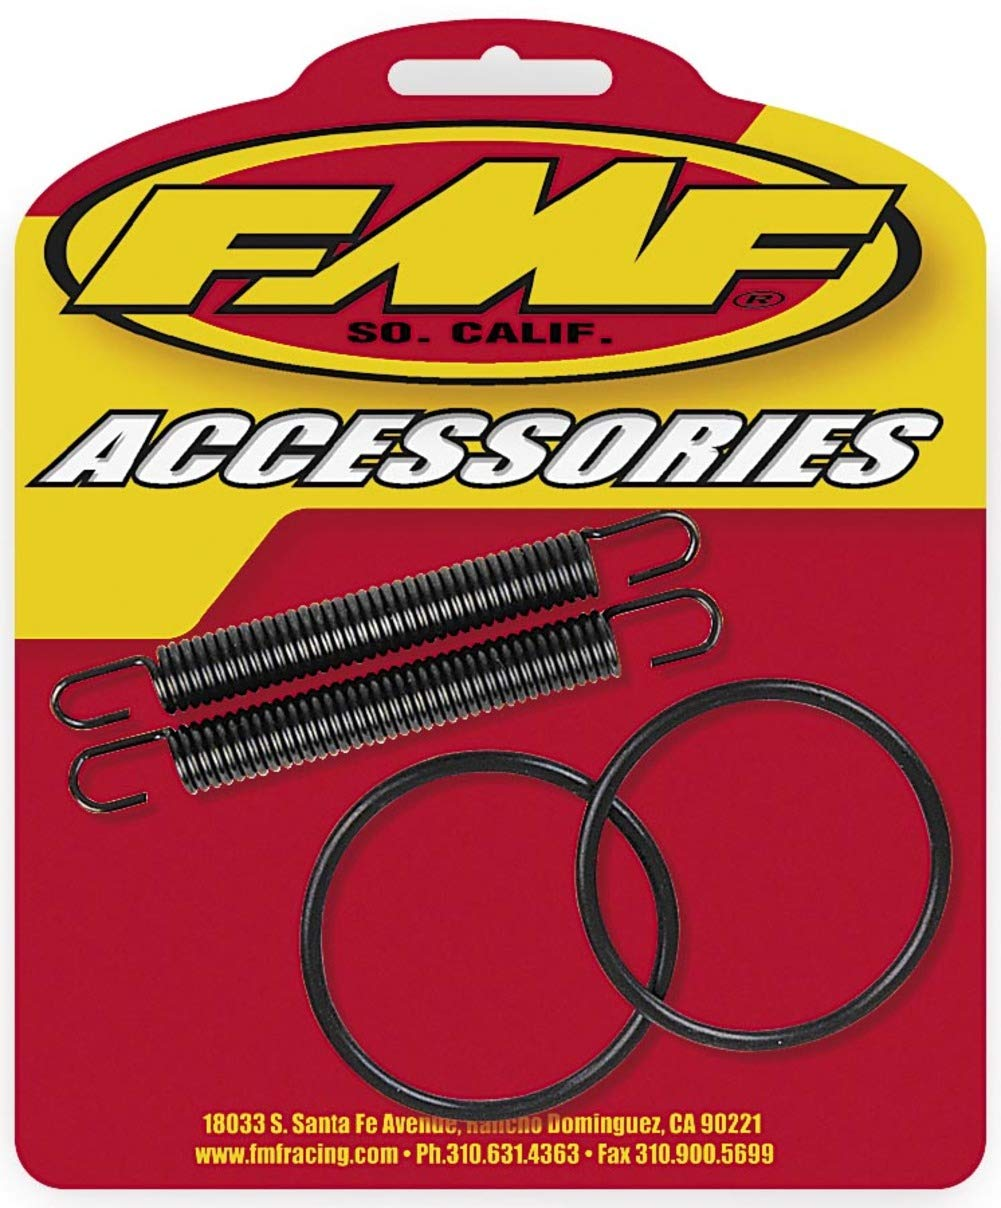 FMF Pipe O-Ring and Spring Kit for Yamaha YZ250 1999-2014 - 011318 011318--AZ1 tr-273295